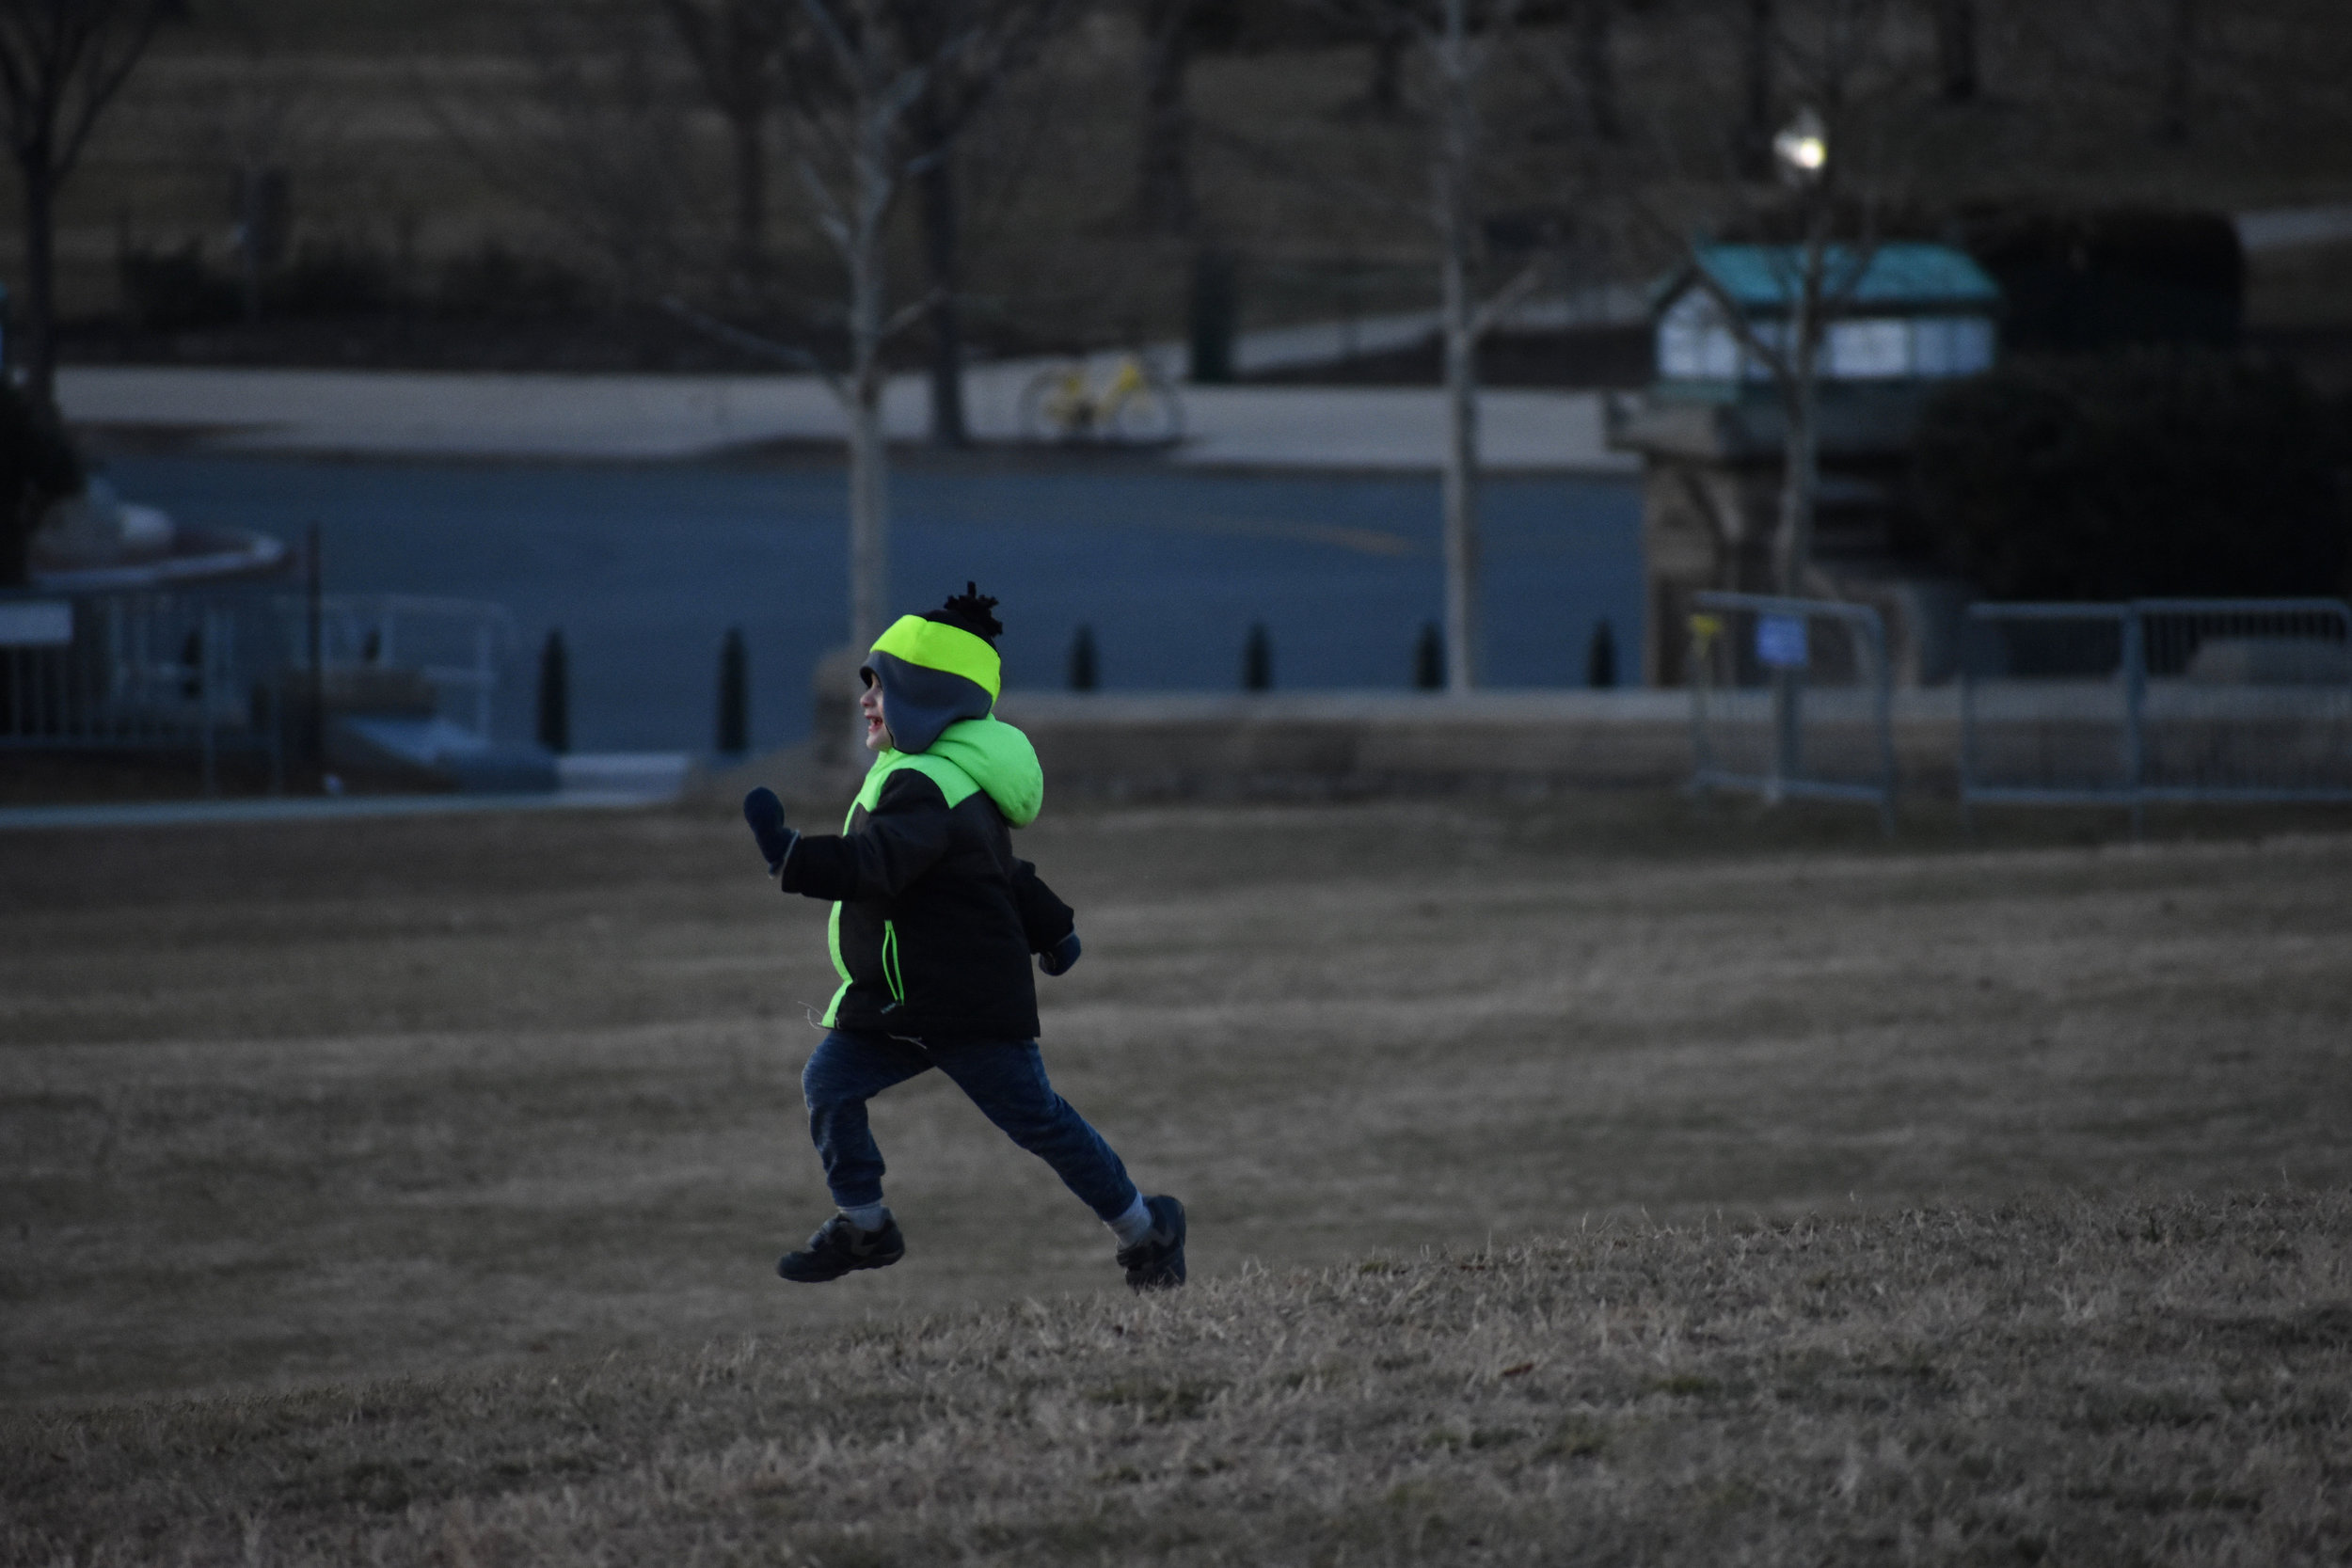 A boy dashes across the West Lawn of the U.S. Capitol in Washington just before sunset, Thursday, Jan. 25, 2018. (Lindsey Leake/American University)